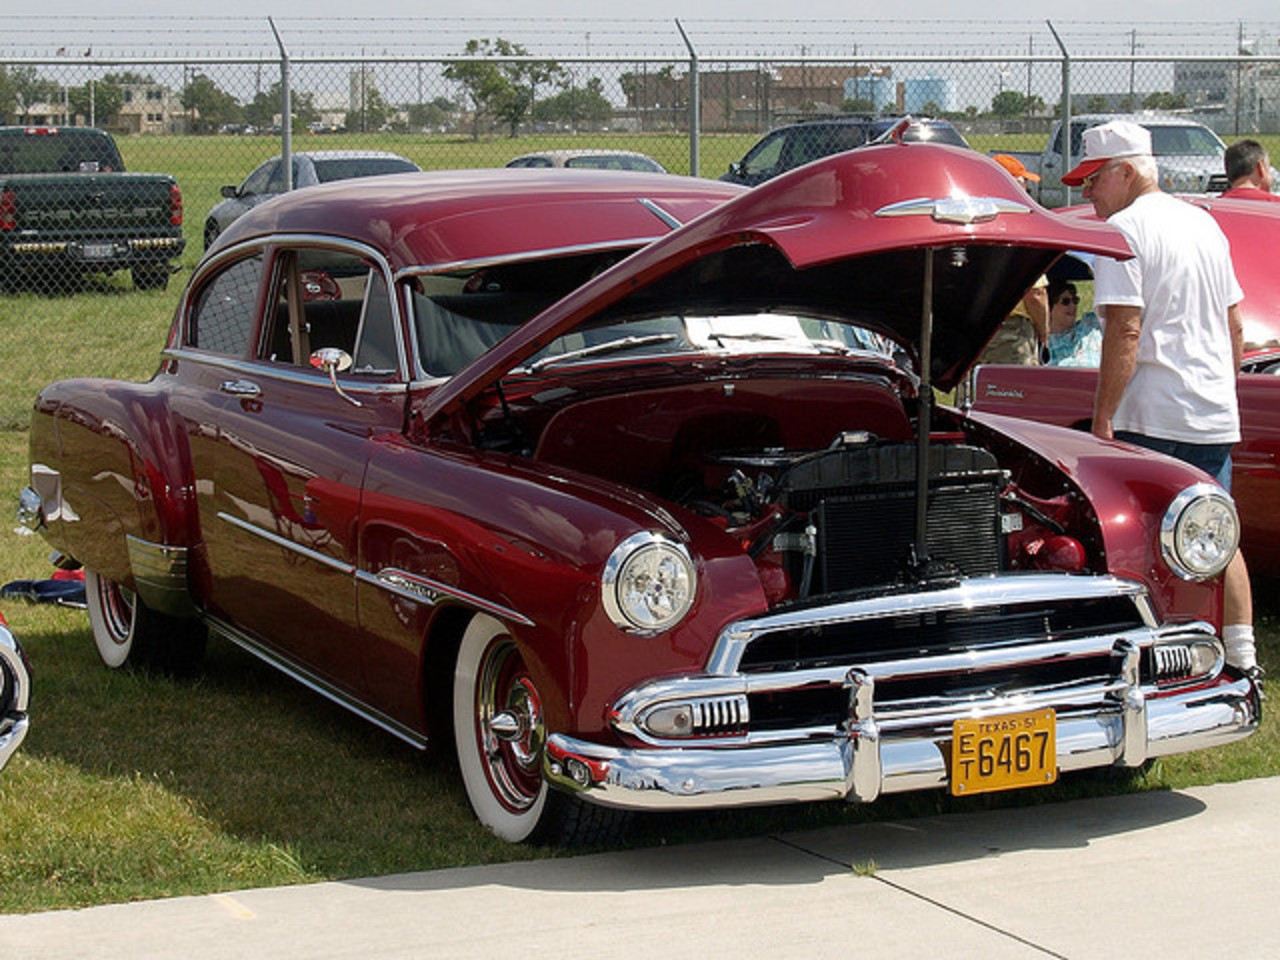 1951 Chevrolet Styleline Deluxe | Flickr - Photo Sharing!